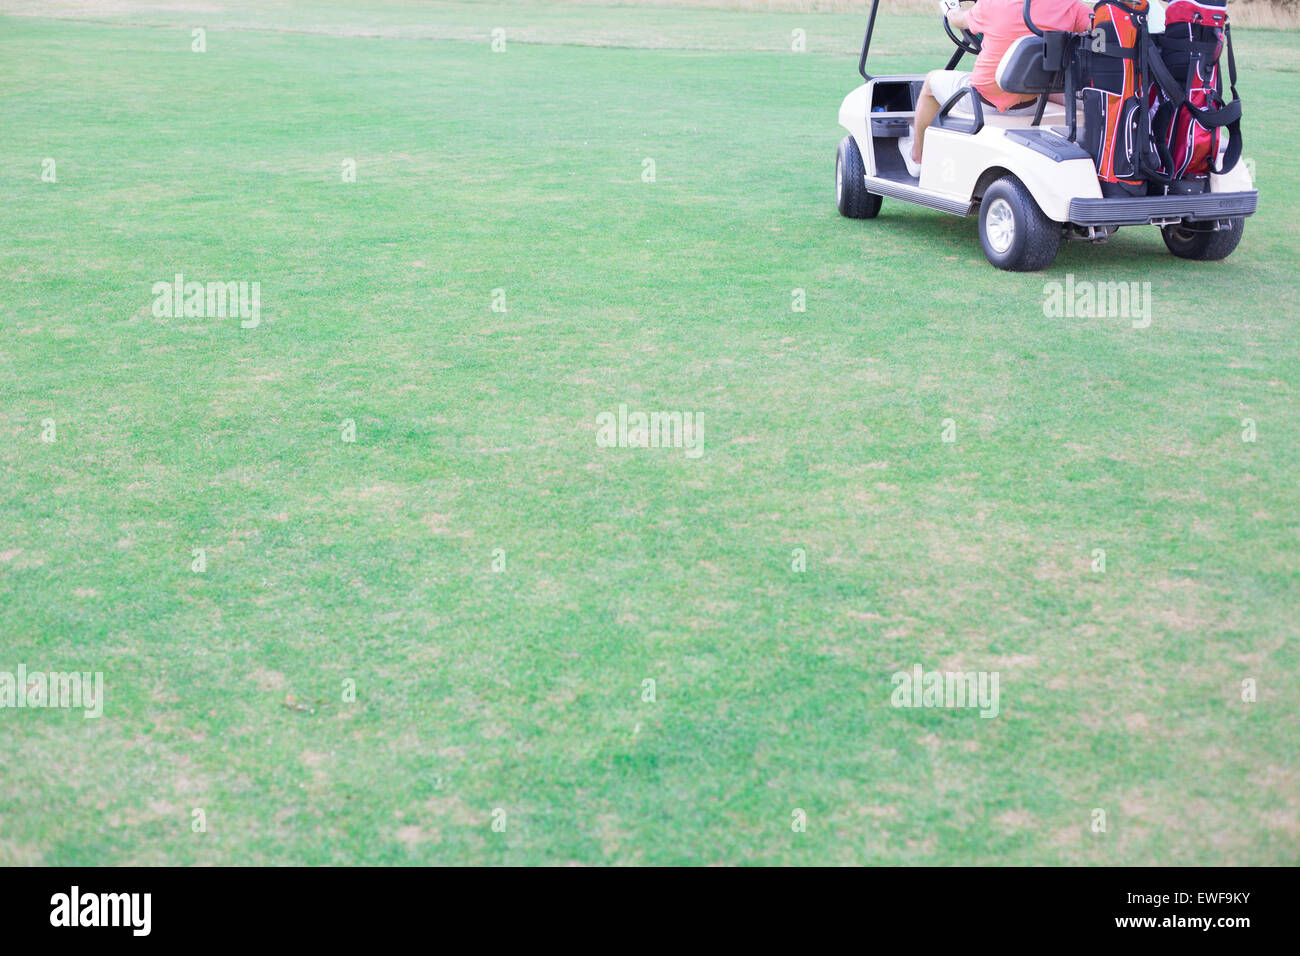 Low section of middle-aged man driving golf cart - Stock Image